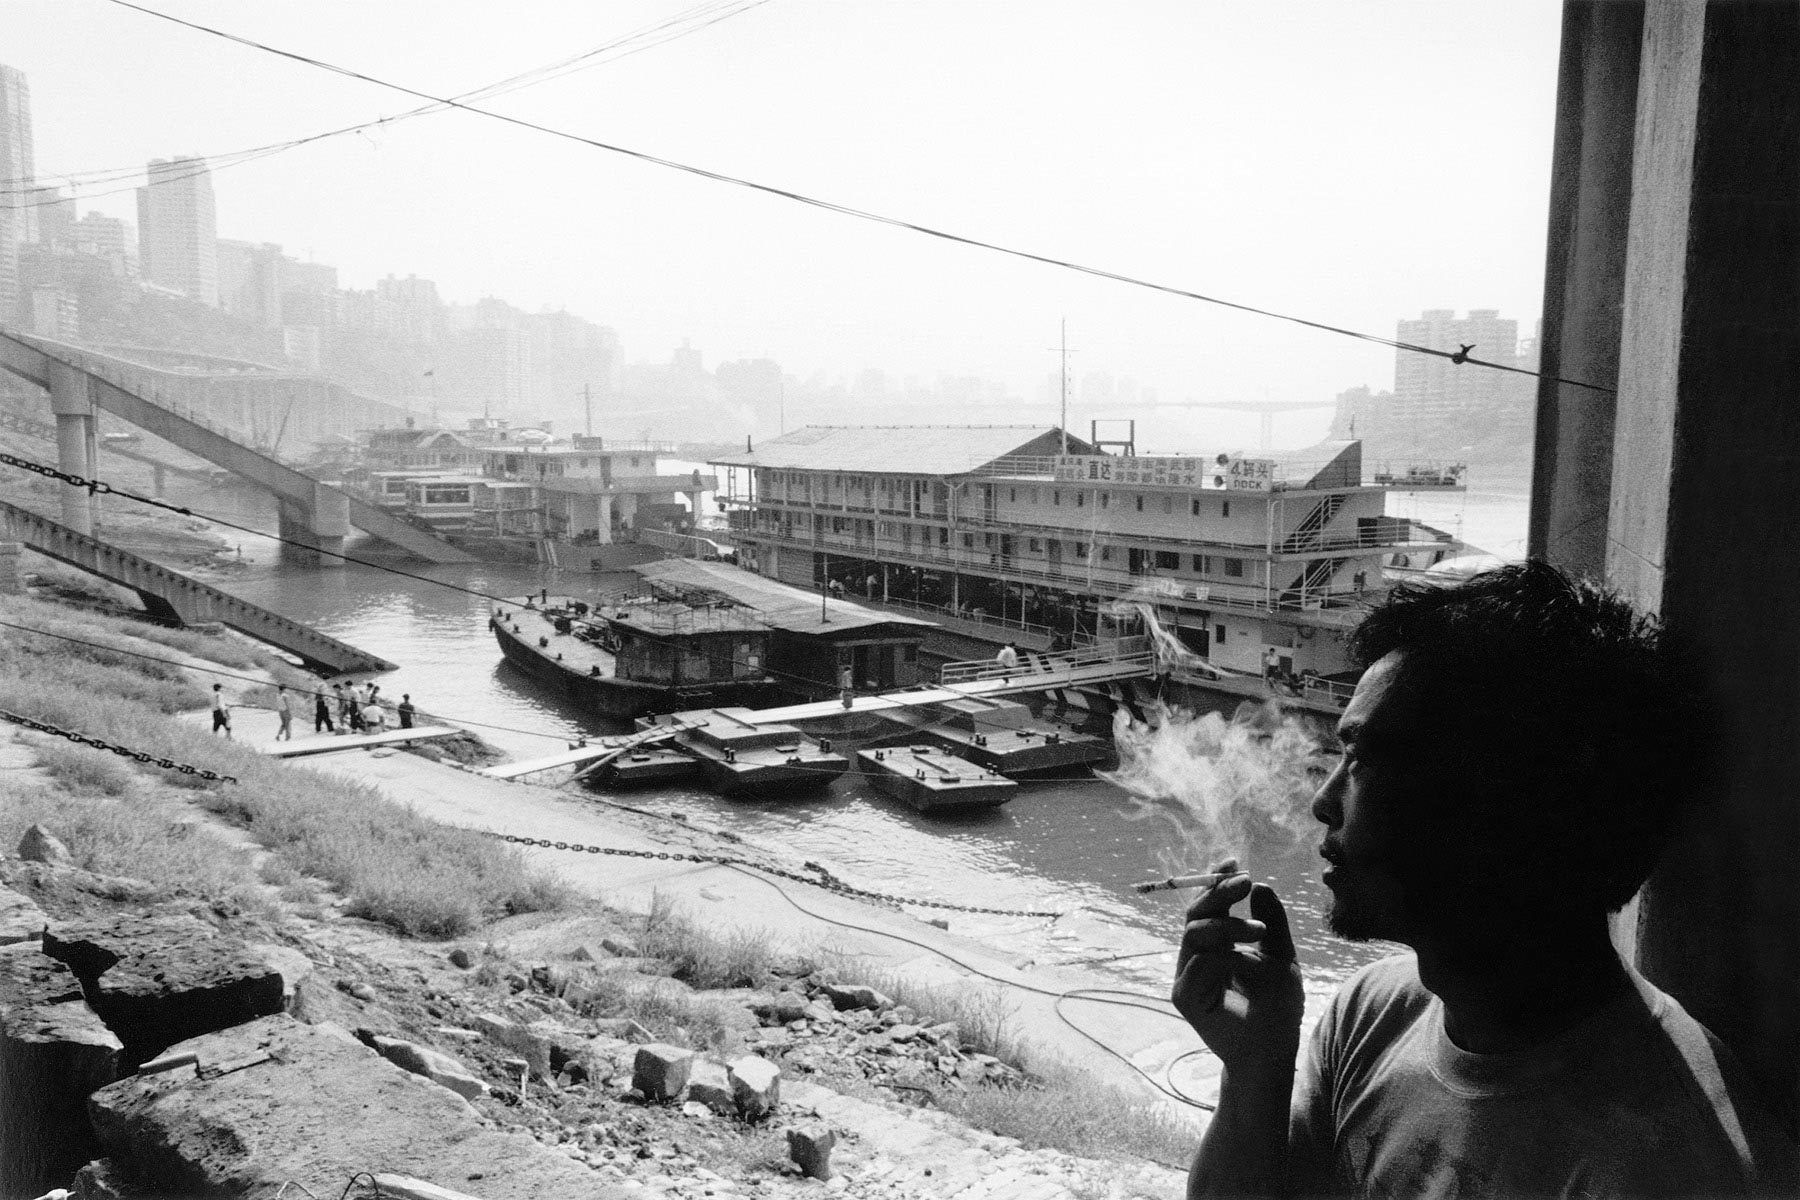 Smoking, Chongqing, China 1999